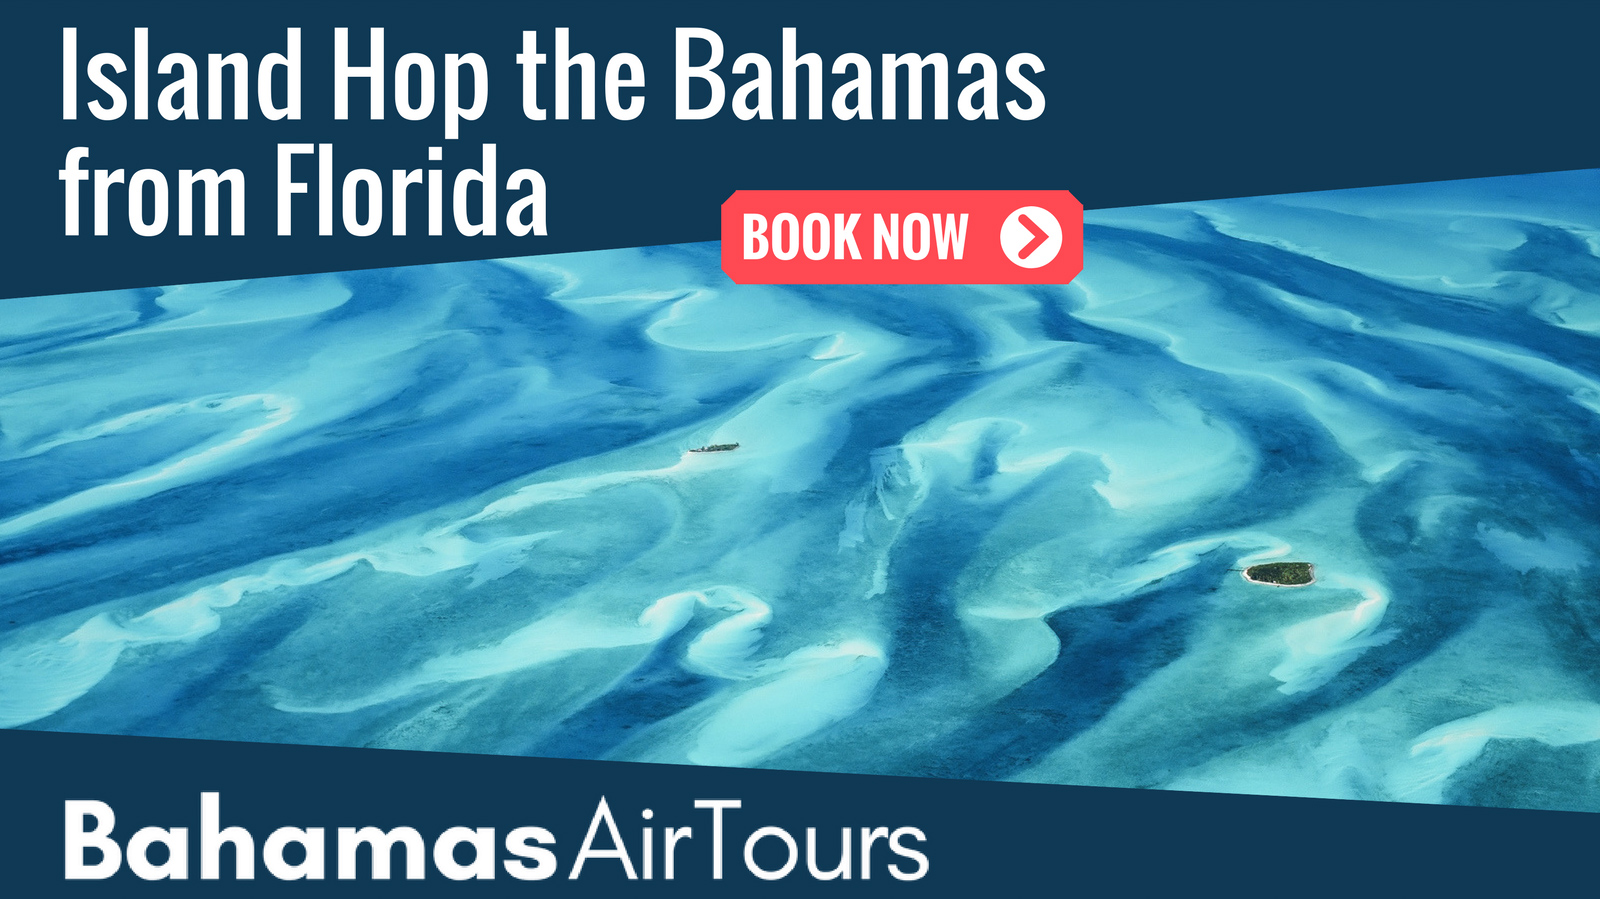 Flights to Bahamas with Bahamas Air Tours, flightseeing the Schooner Cays